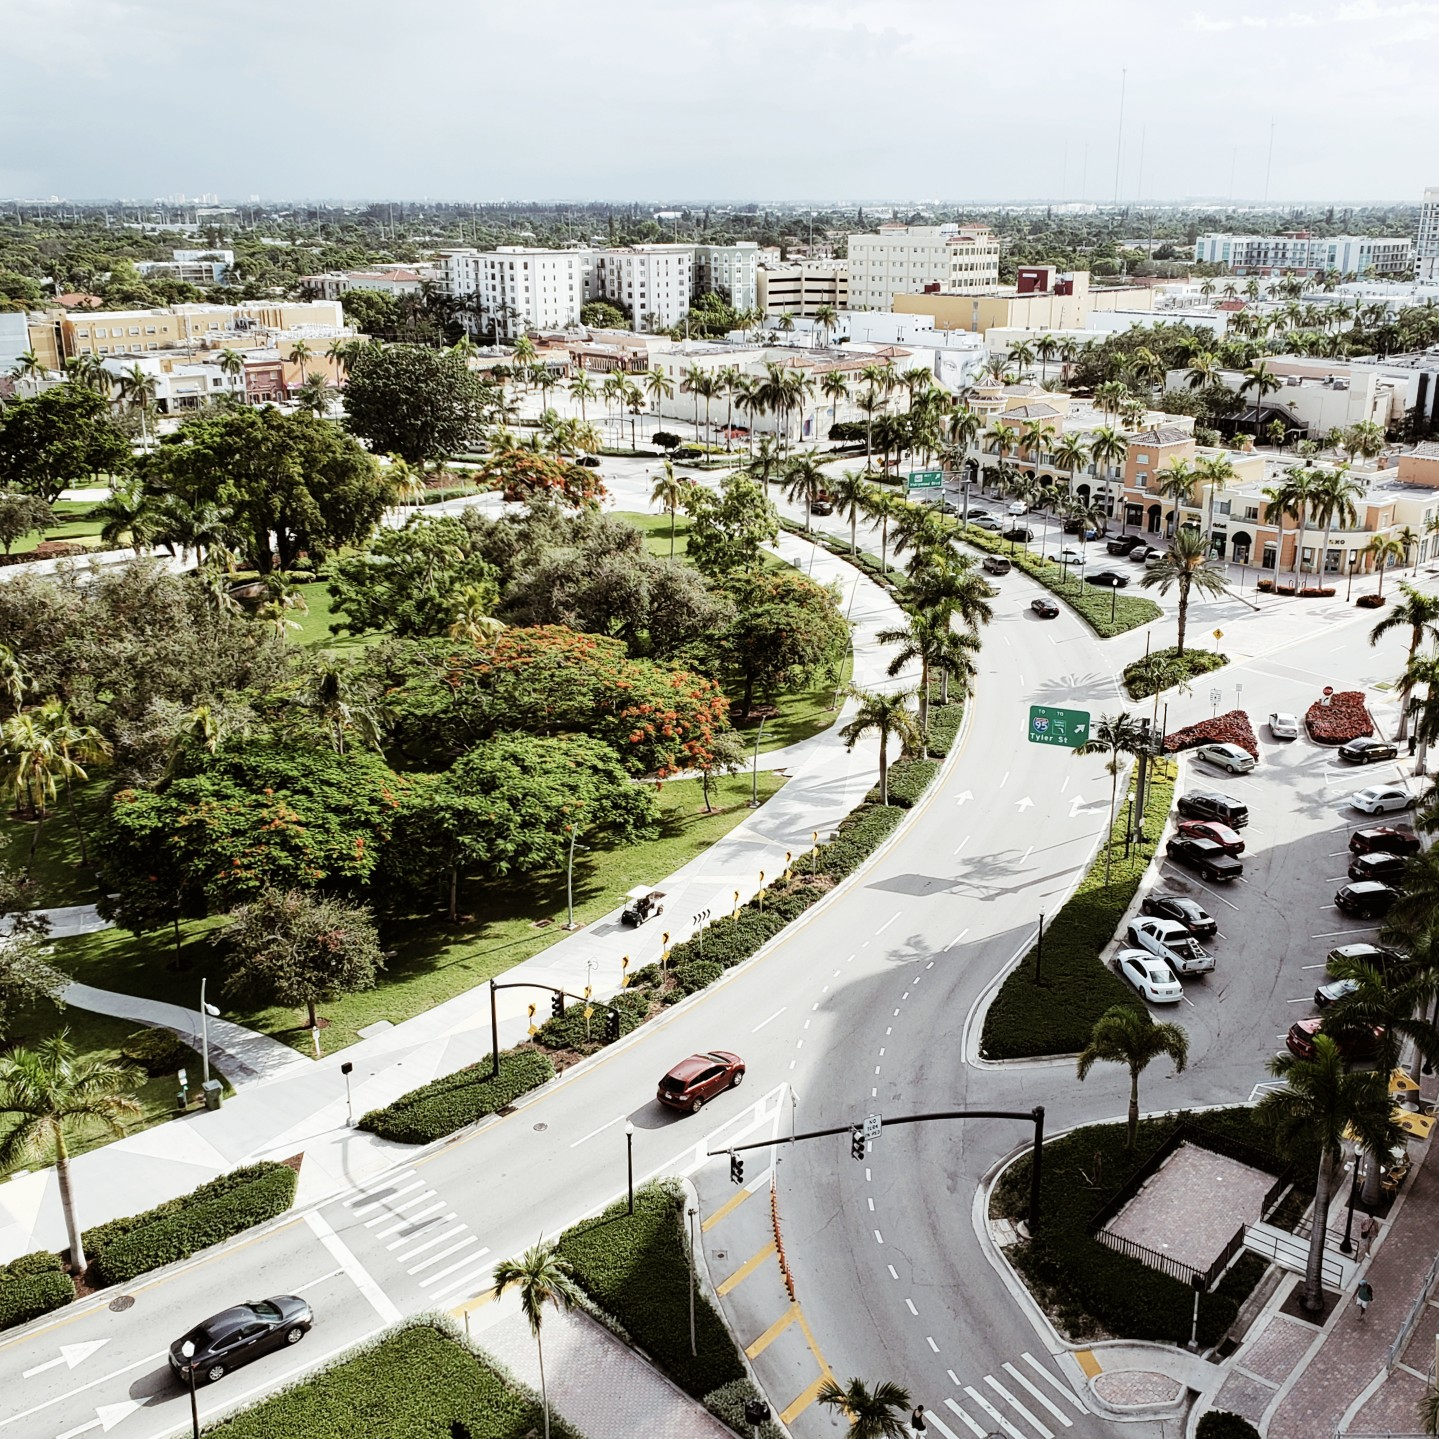 Views of Young Circle in Downtown Hollywood Florida